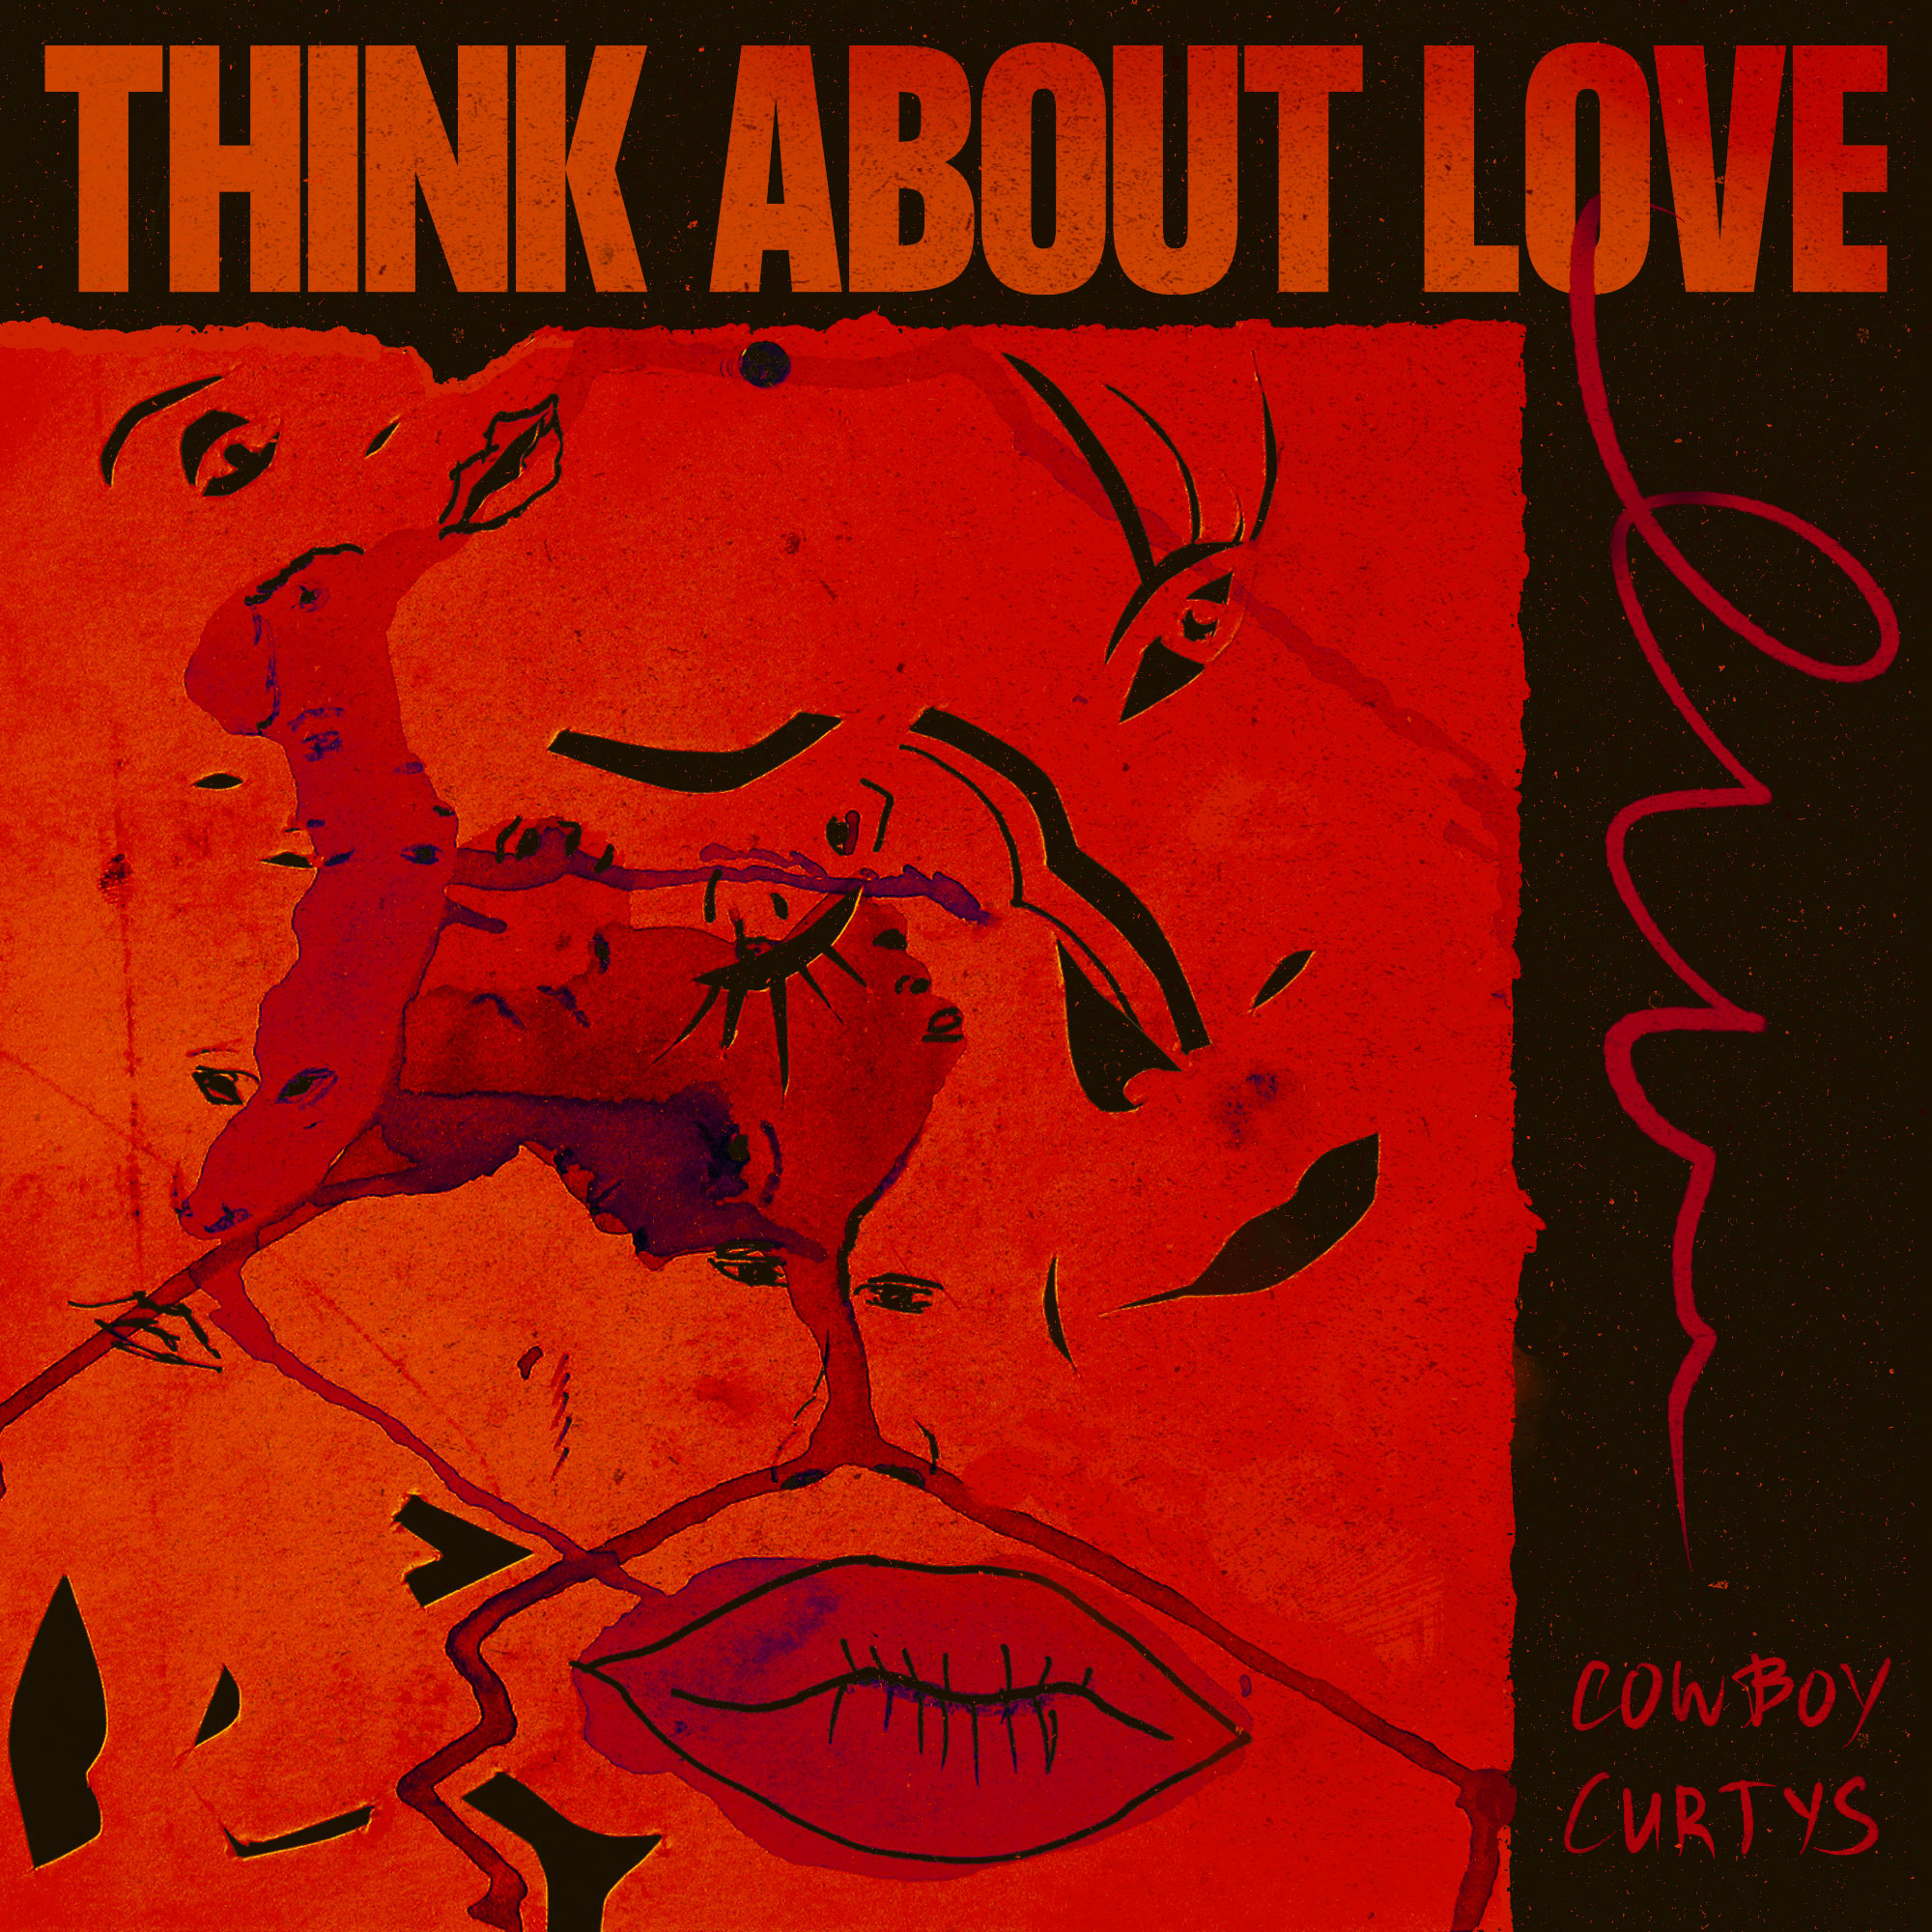 think-about-love-cover-art-web